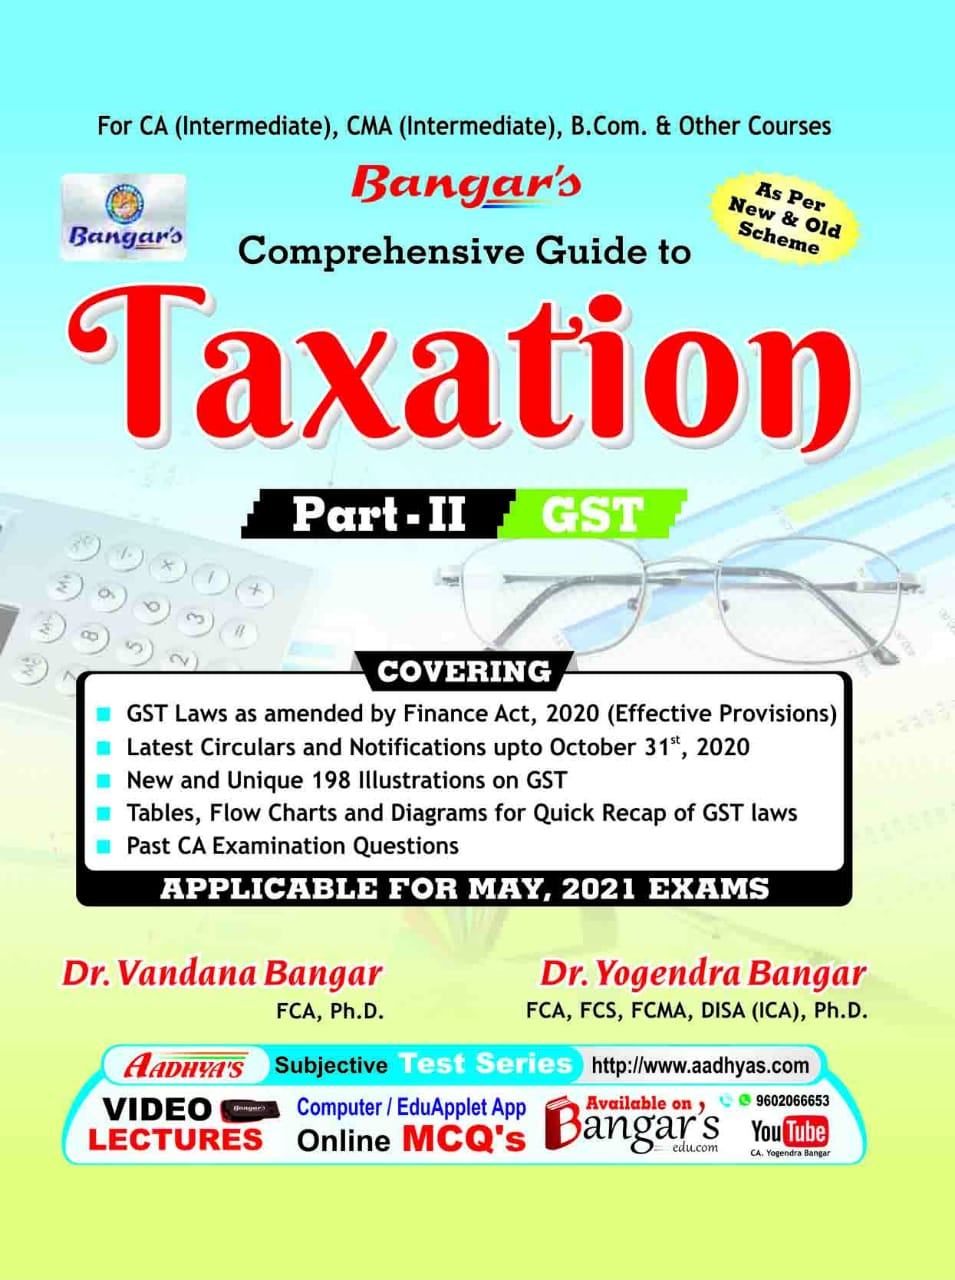 Bangar's Comprehensive Guide to Taxation Part-II Indirect Taxes by Dr. Vandana Bangar and Dr. Yogendra Bangar (Aadhya Prakashan Publishing) for 2021 Exam